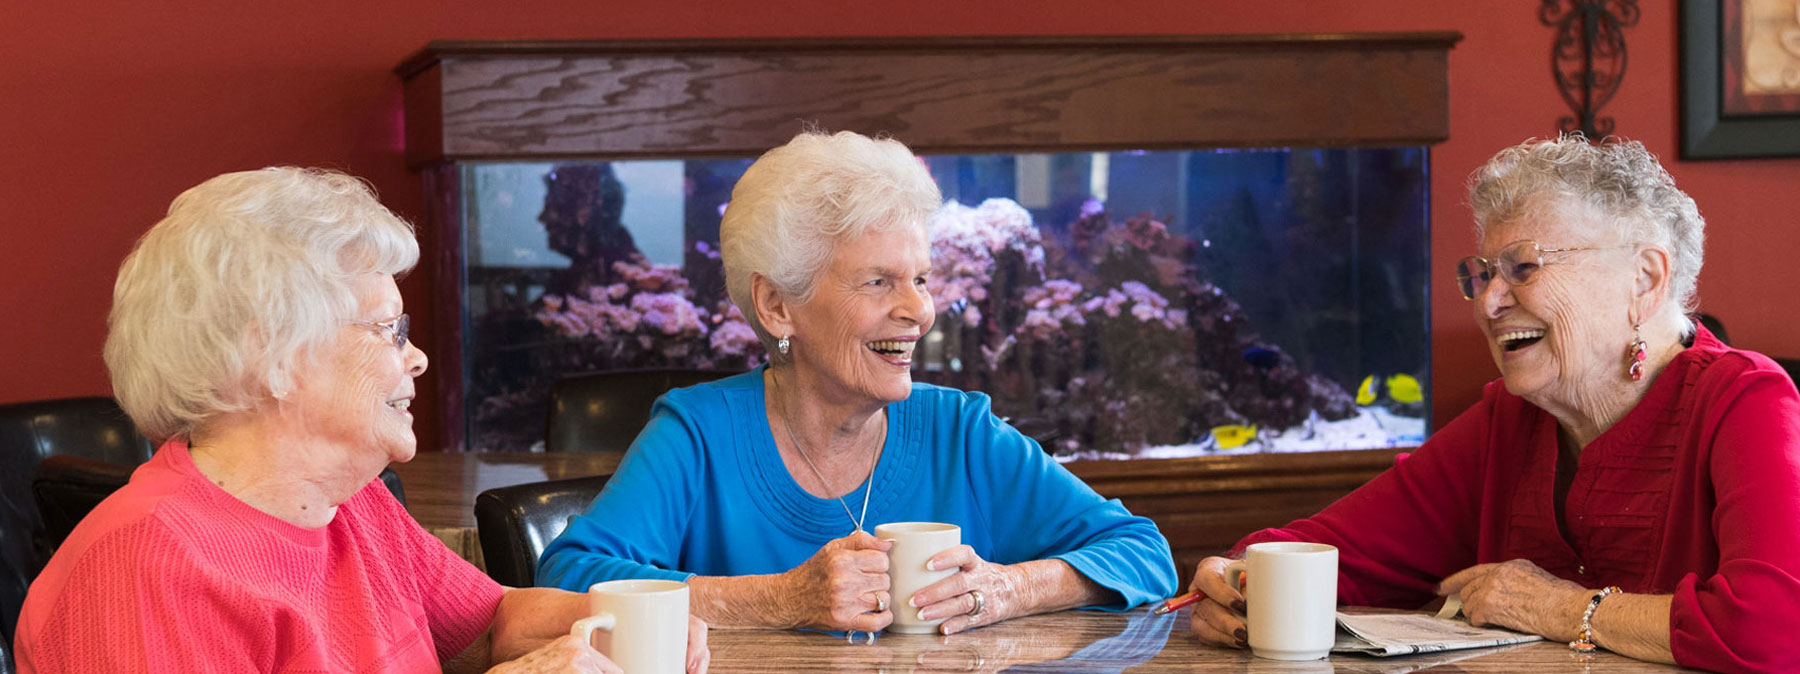 Three women - residents of the Mt. Creek are sitting at a coffee table and having a good time